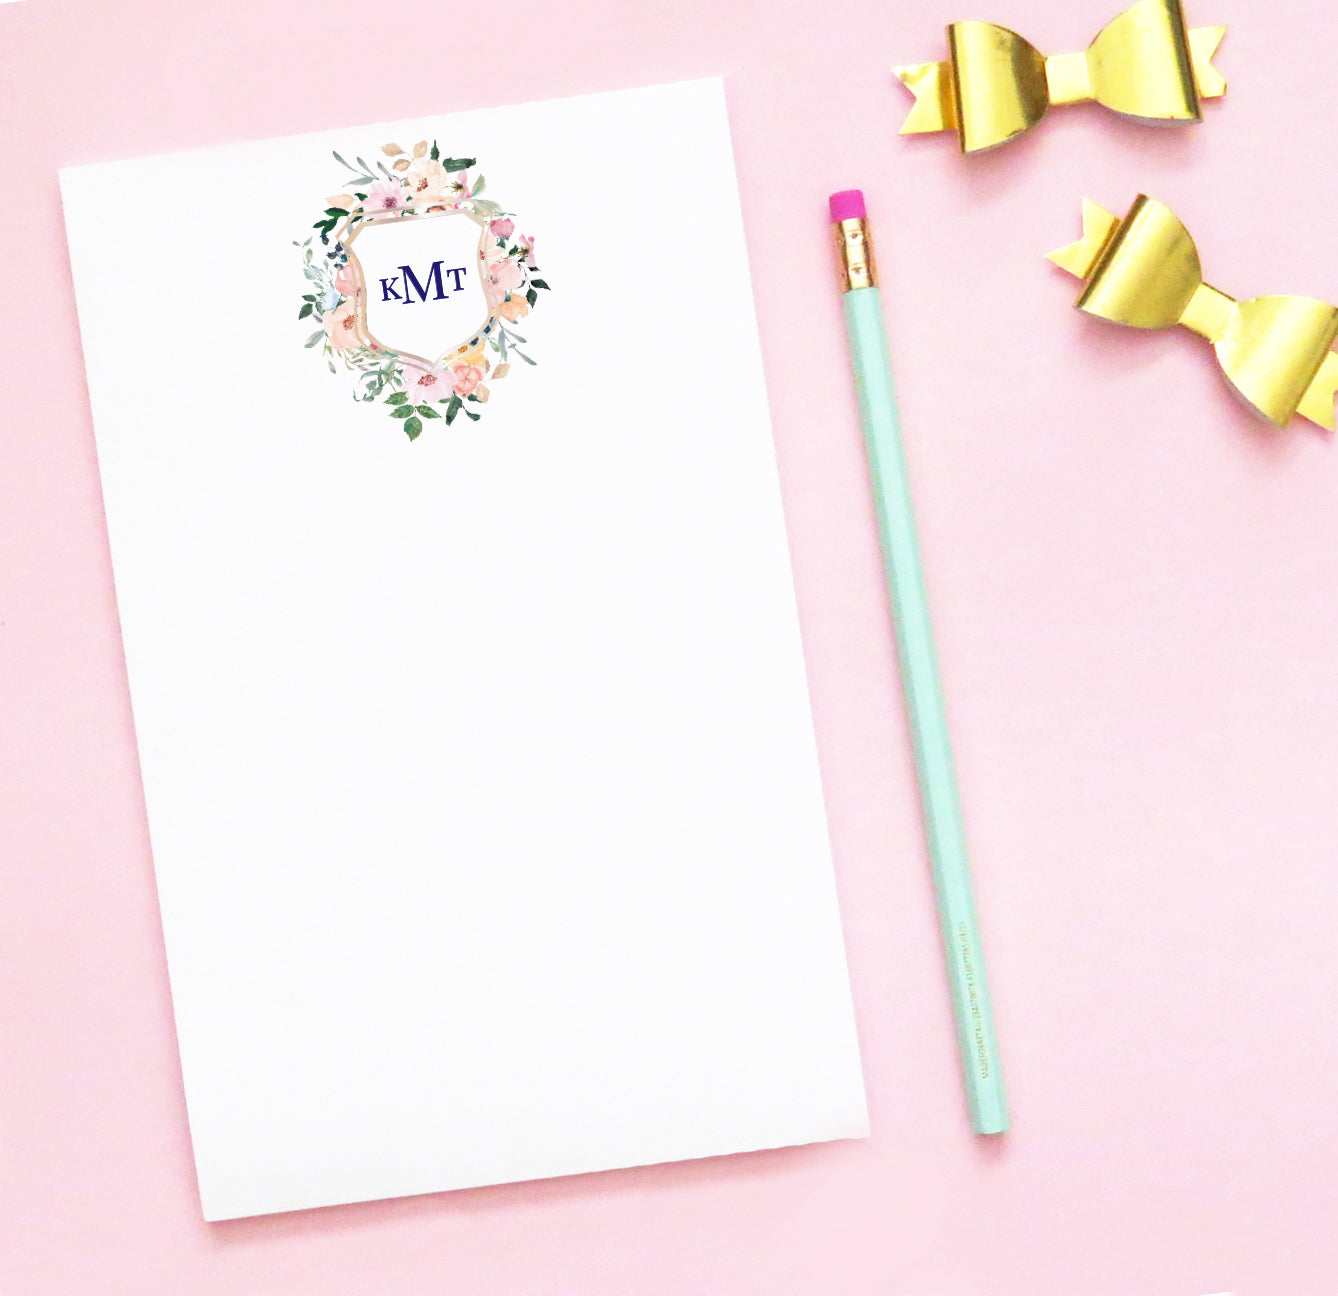 NP083 floral 3 letter monogram notepads personalized flowers block font